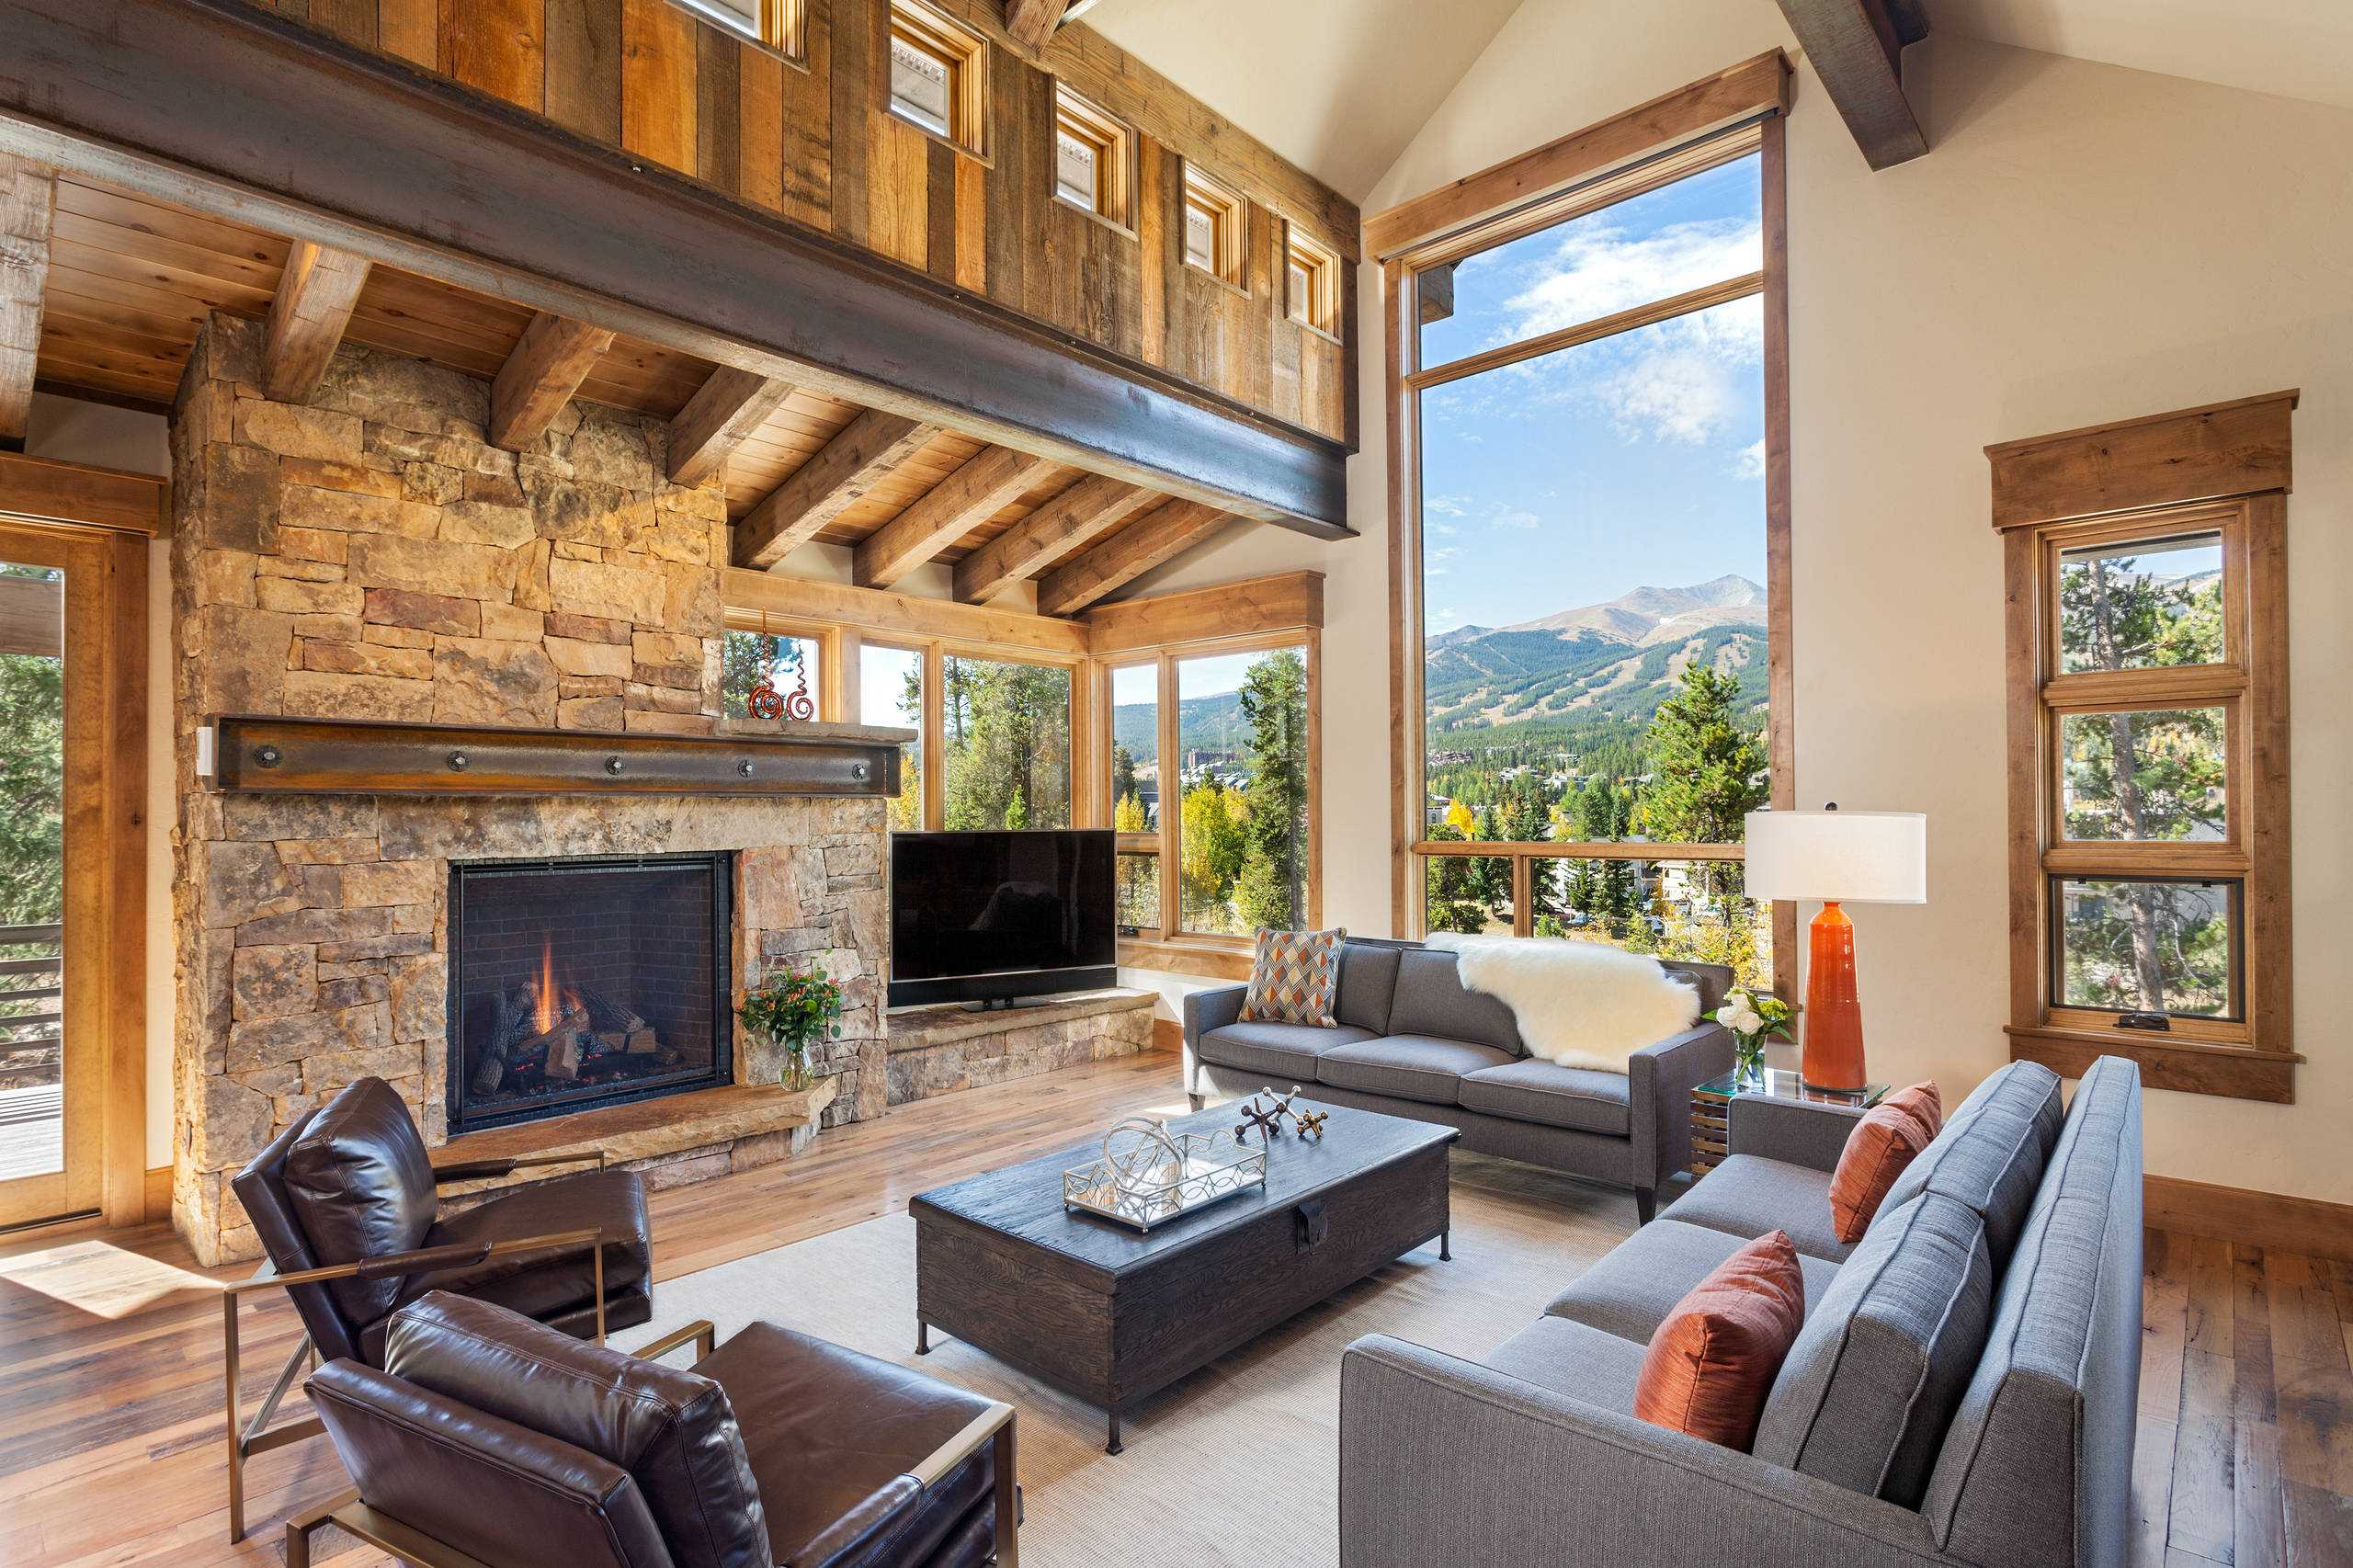 16 Sophisticated Rustic Living Room Designs You Won't Turn ... on Living Room Style Ideas  id=77507